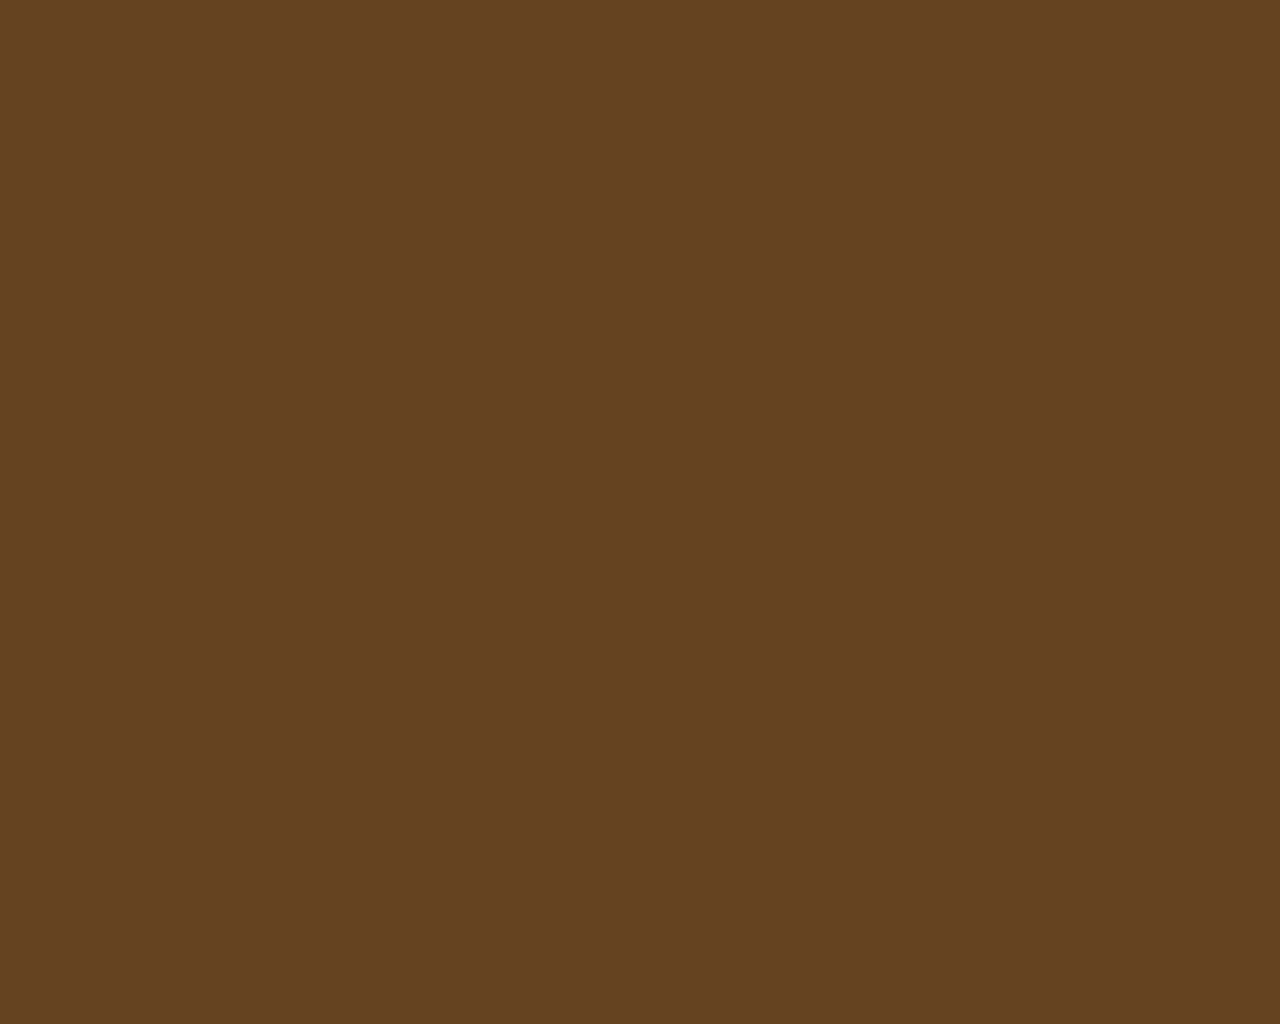 1280x1024 Dark Brown Solid Color Background